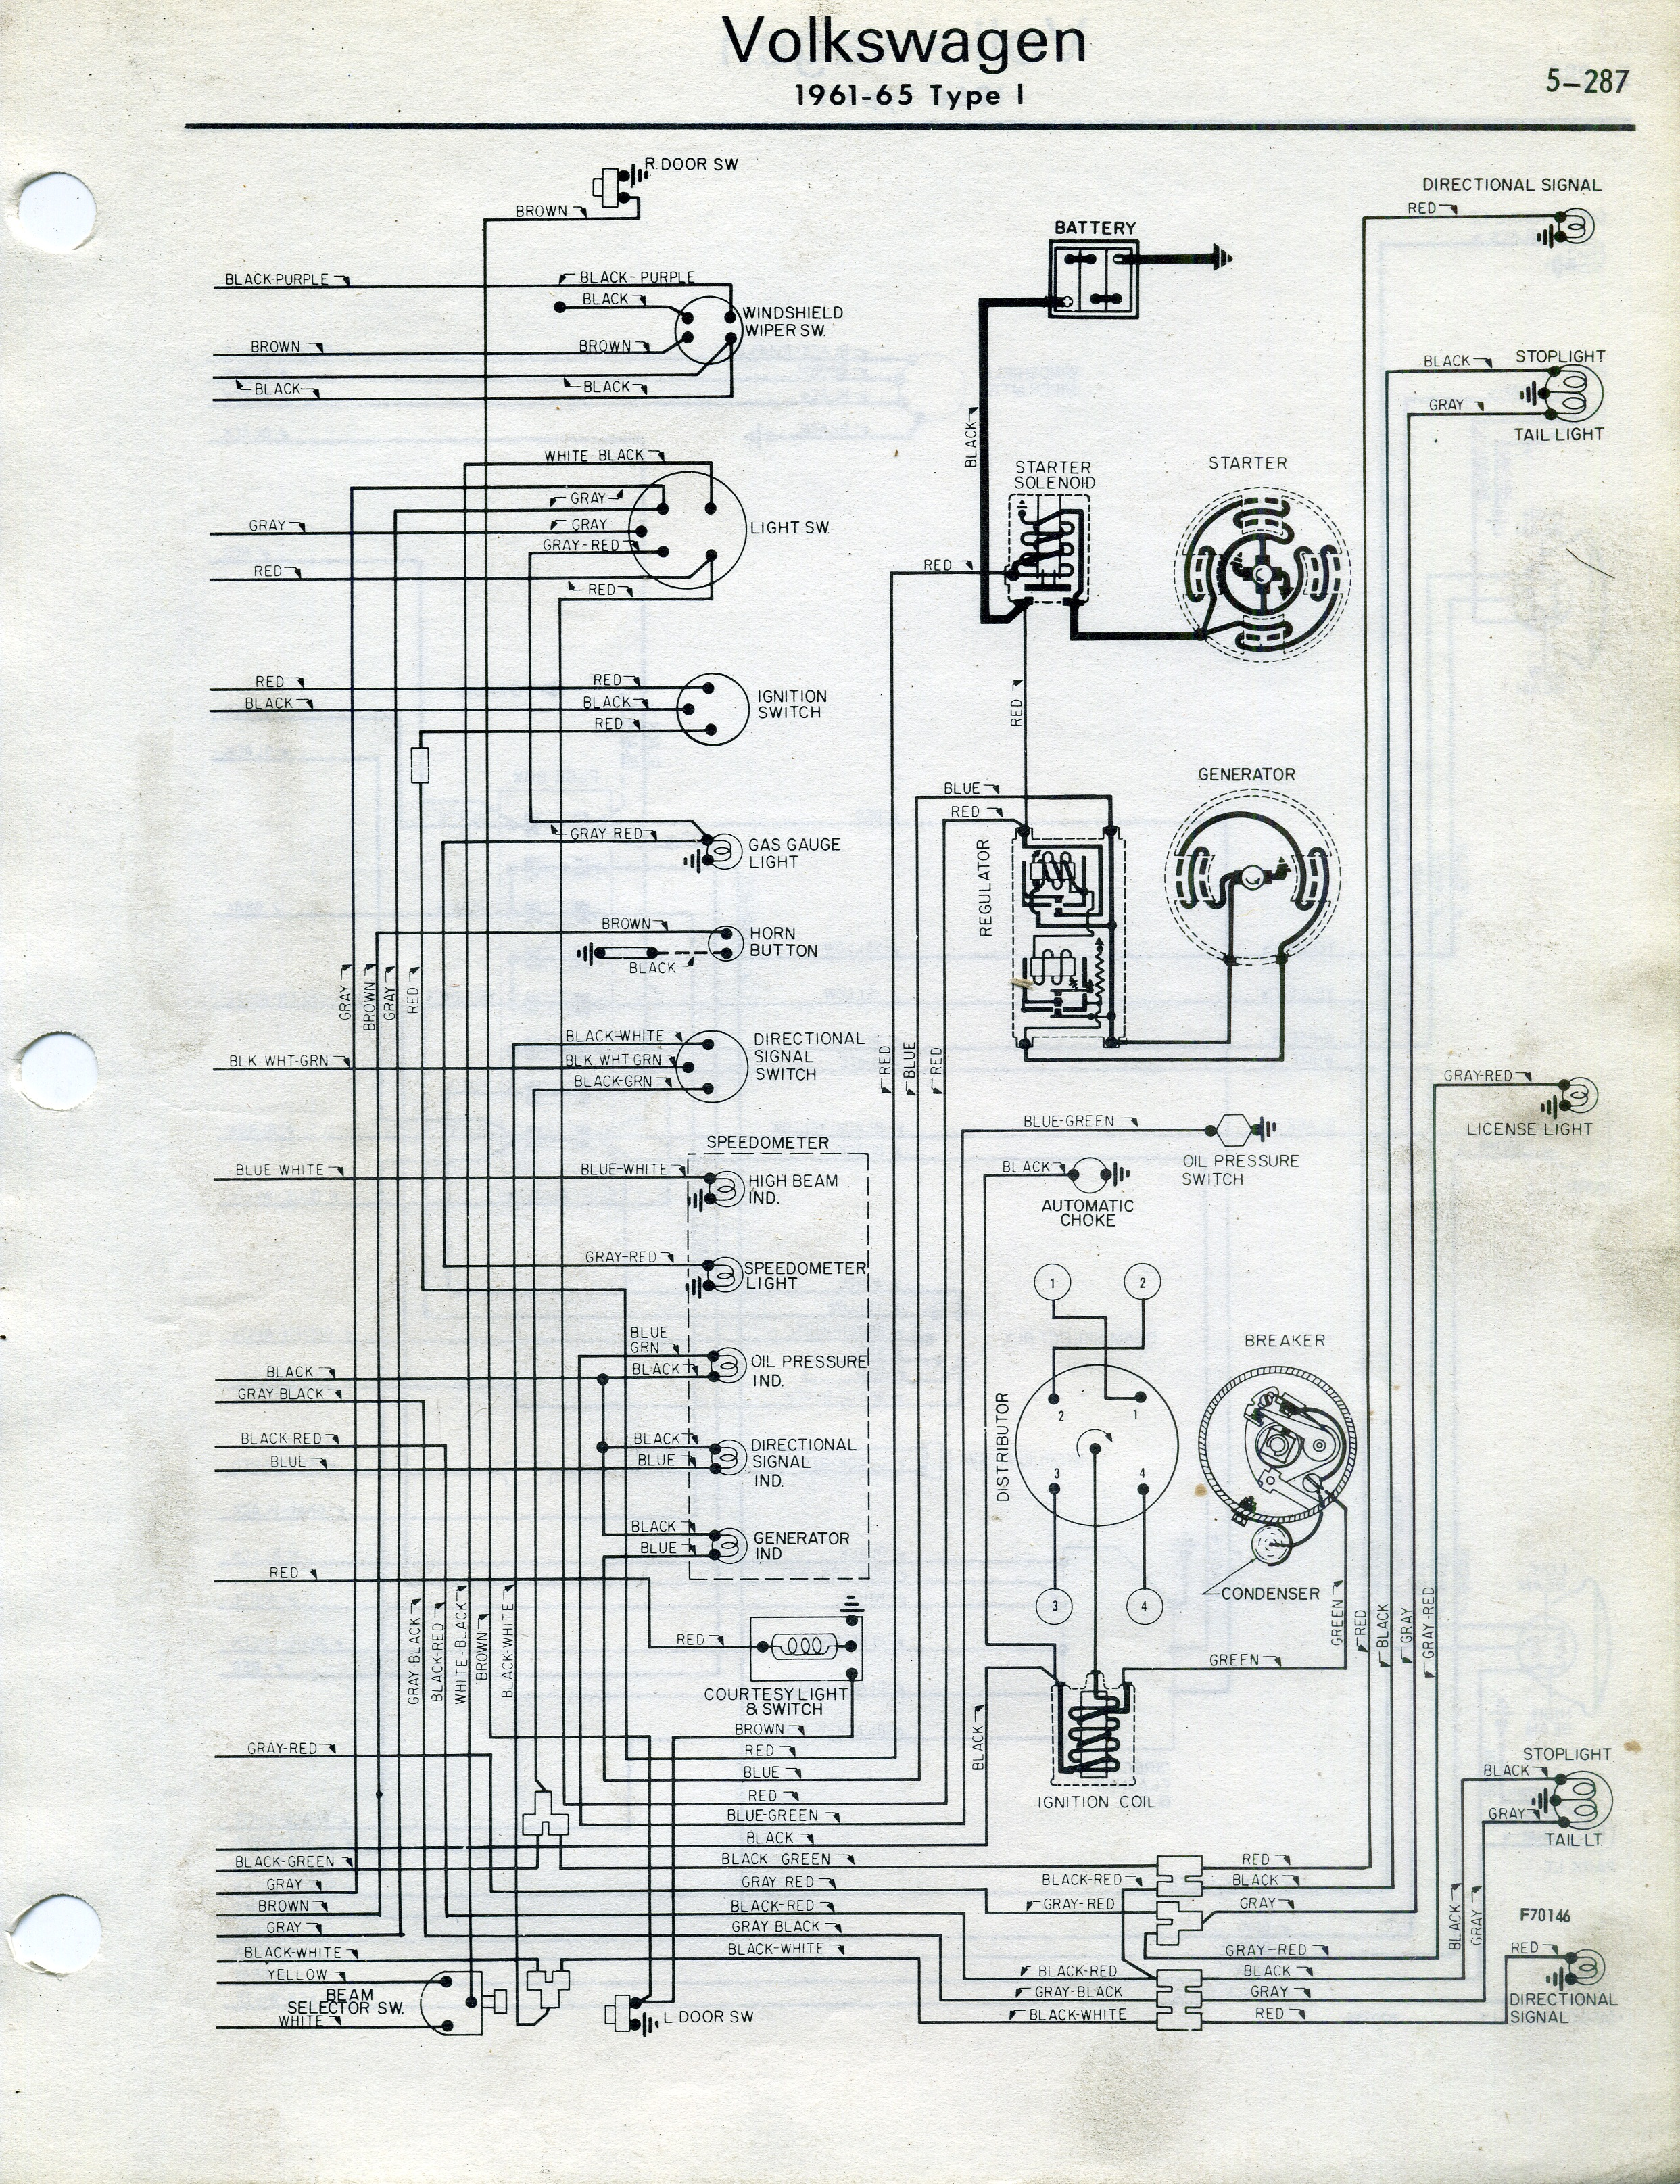 TheSamba.com :: Type 1 Wiring Diagrams on 67 camaro wiring schematic, mini cooper wiring schematic, mustang wiring schematic, porsche wiring schematic, ford wiring schematic, corvette wiring schematic, vw dune buggy wiring schematic, honda wiring schematic, nissan wiring schematic,